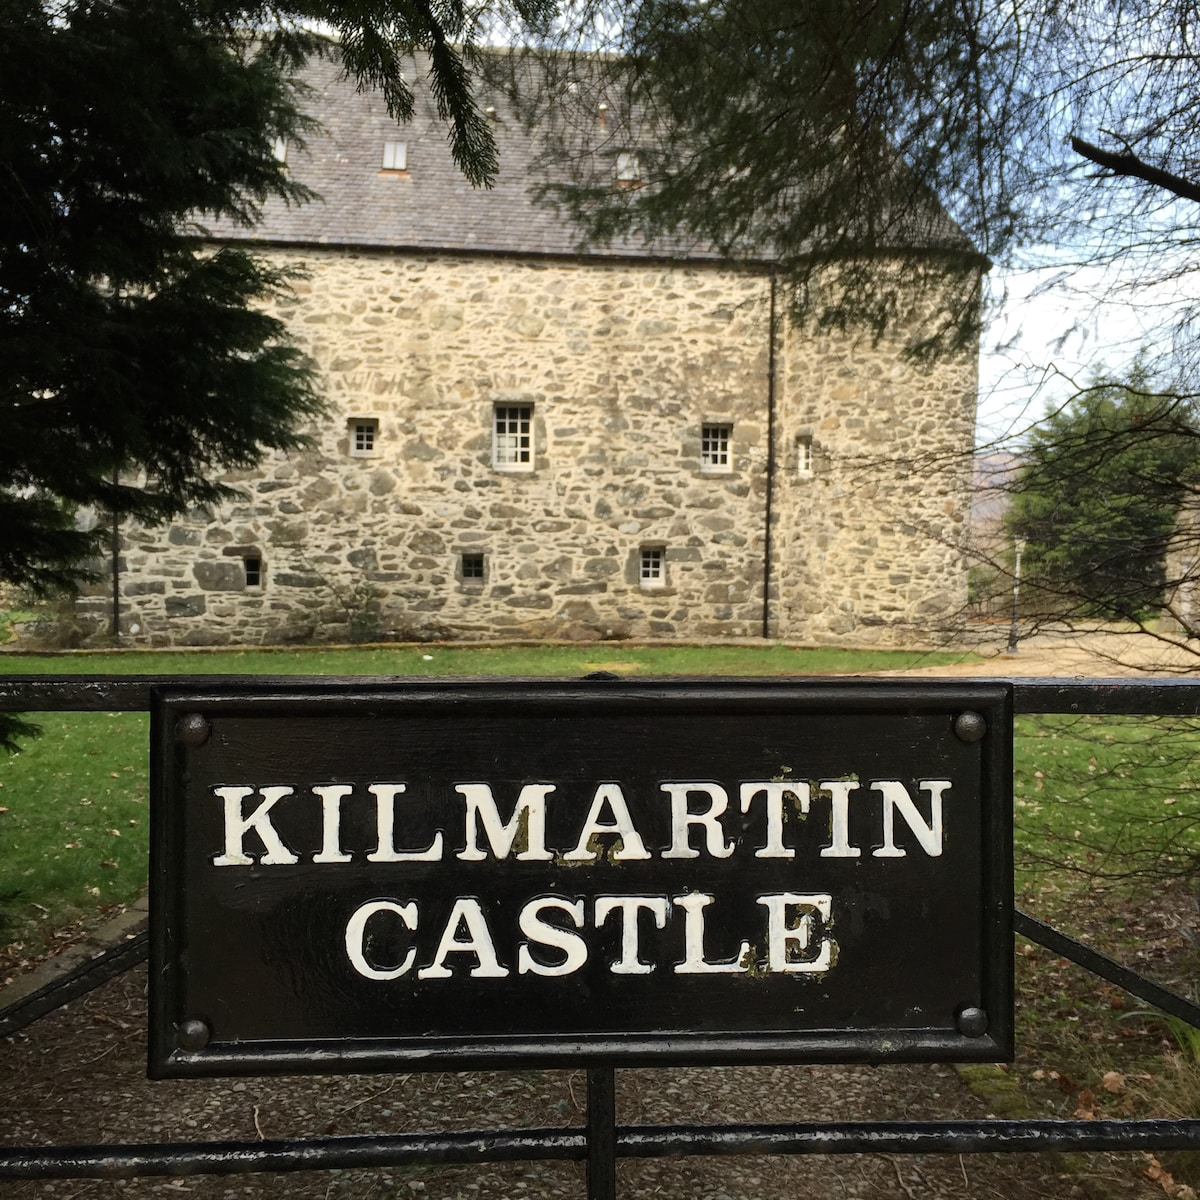 We fell in love with Kilmartin Castle whilst touri